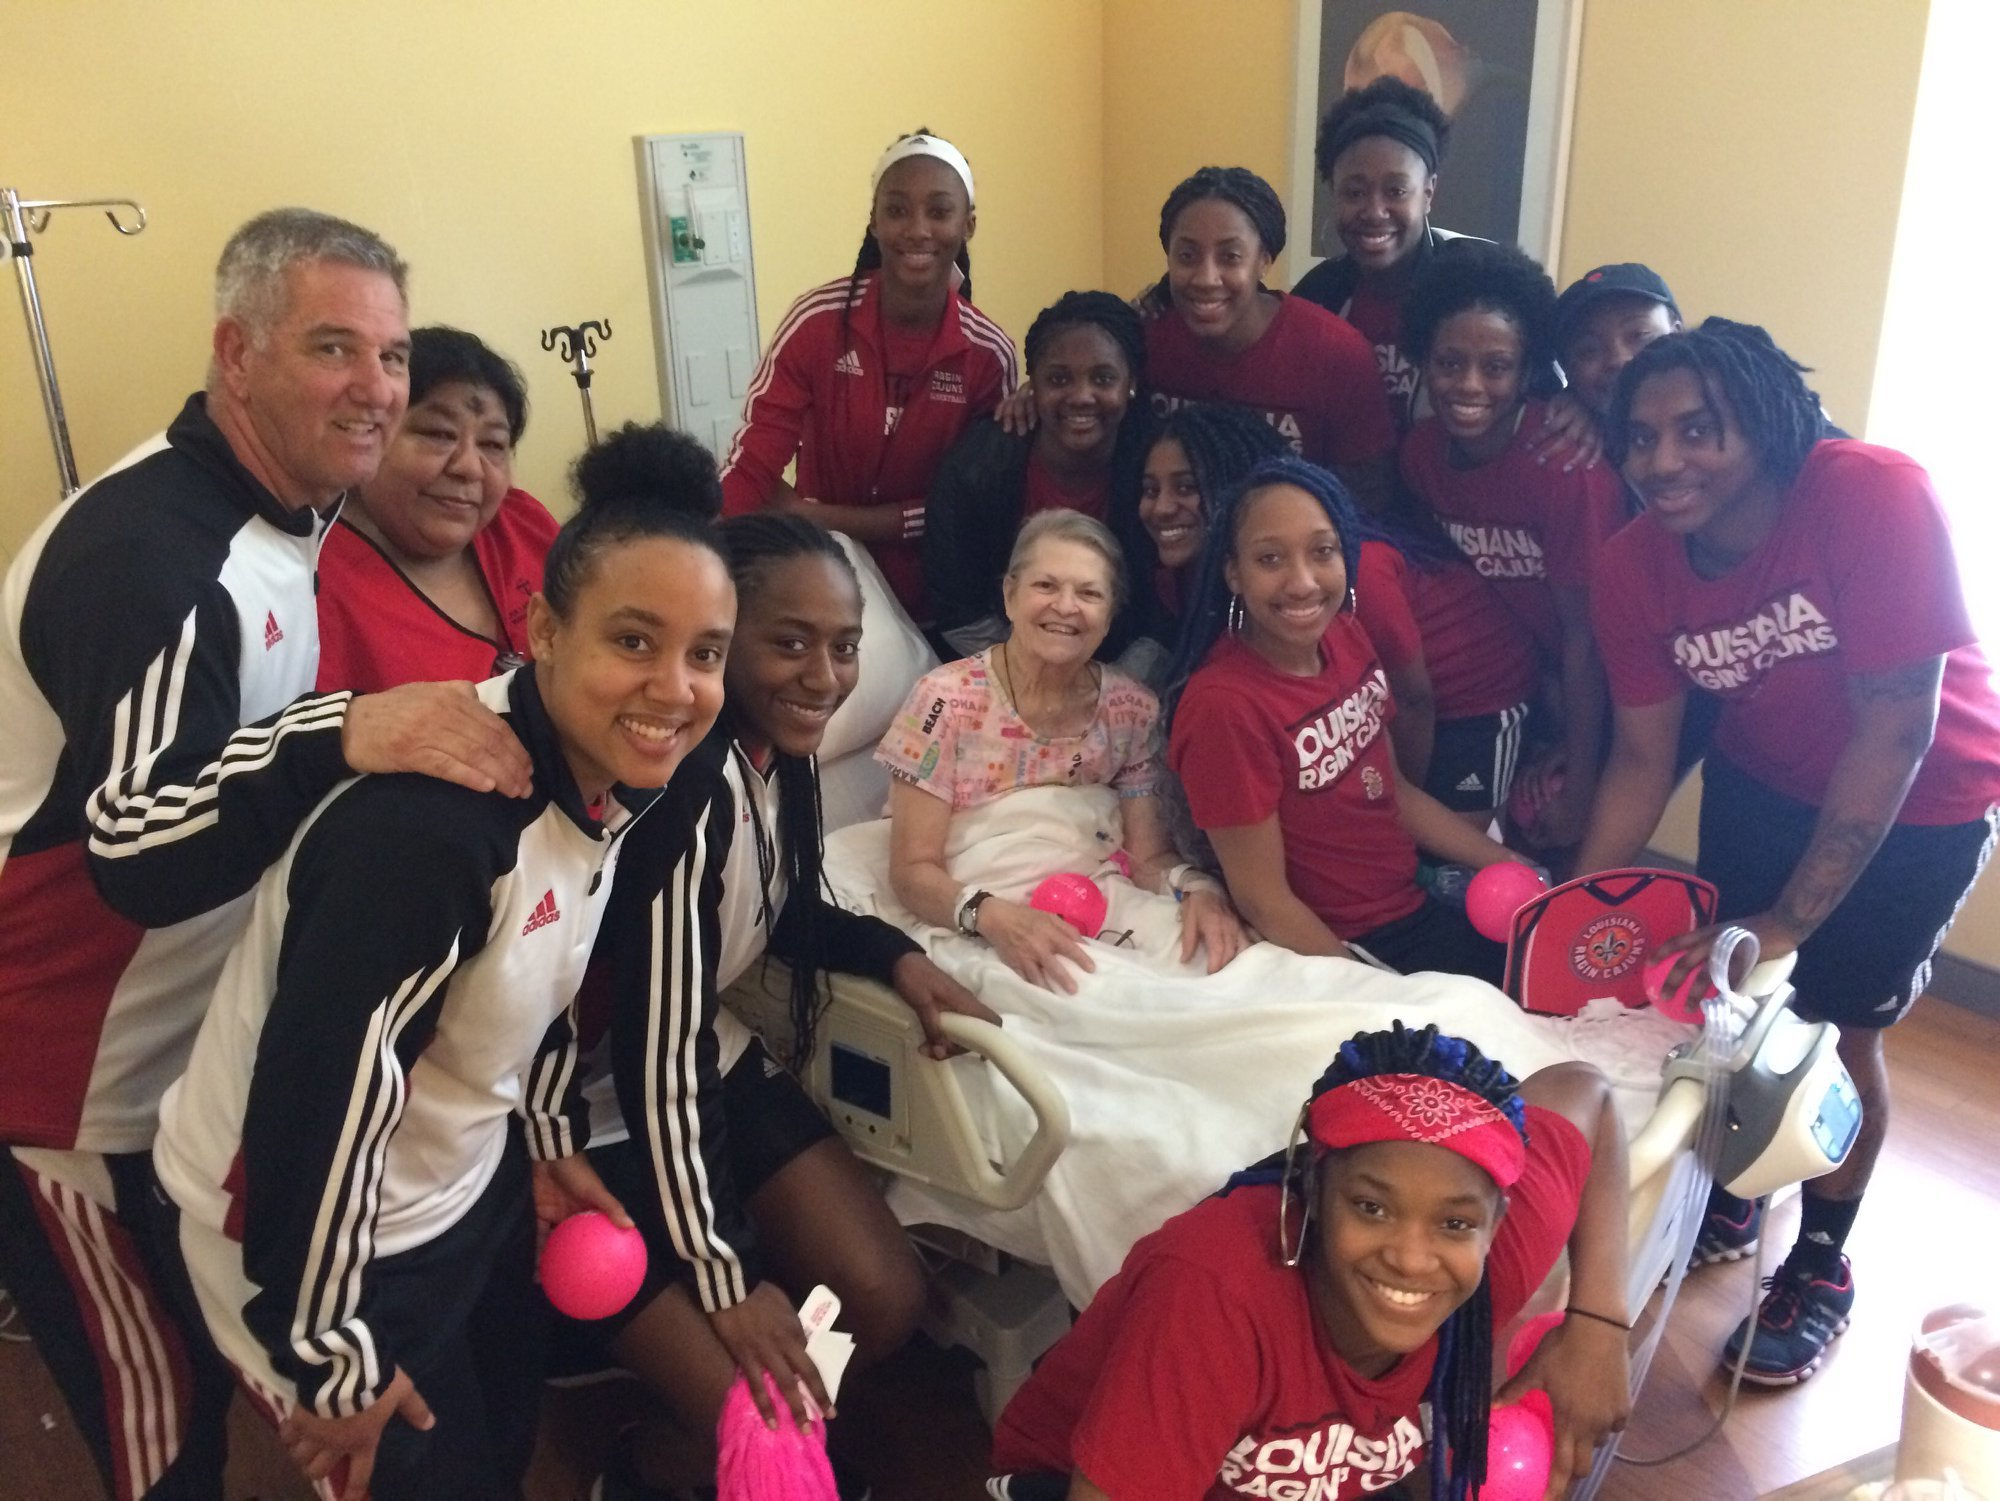 Janet Guidry is an oncology patient at our Lady of Lourdes on the fifth floor. She received a very welcome surprise today by a group of very bright and cheery young UL athletes.